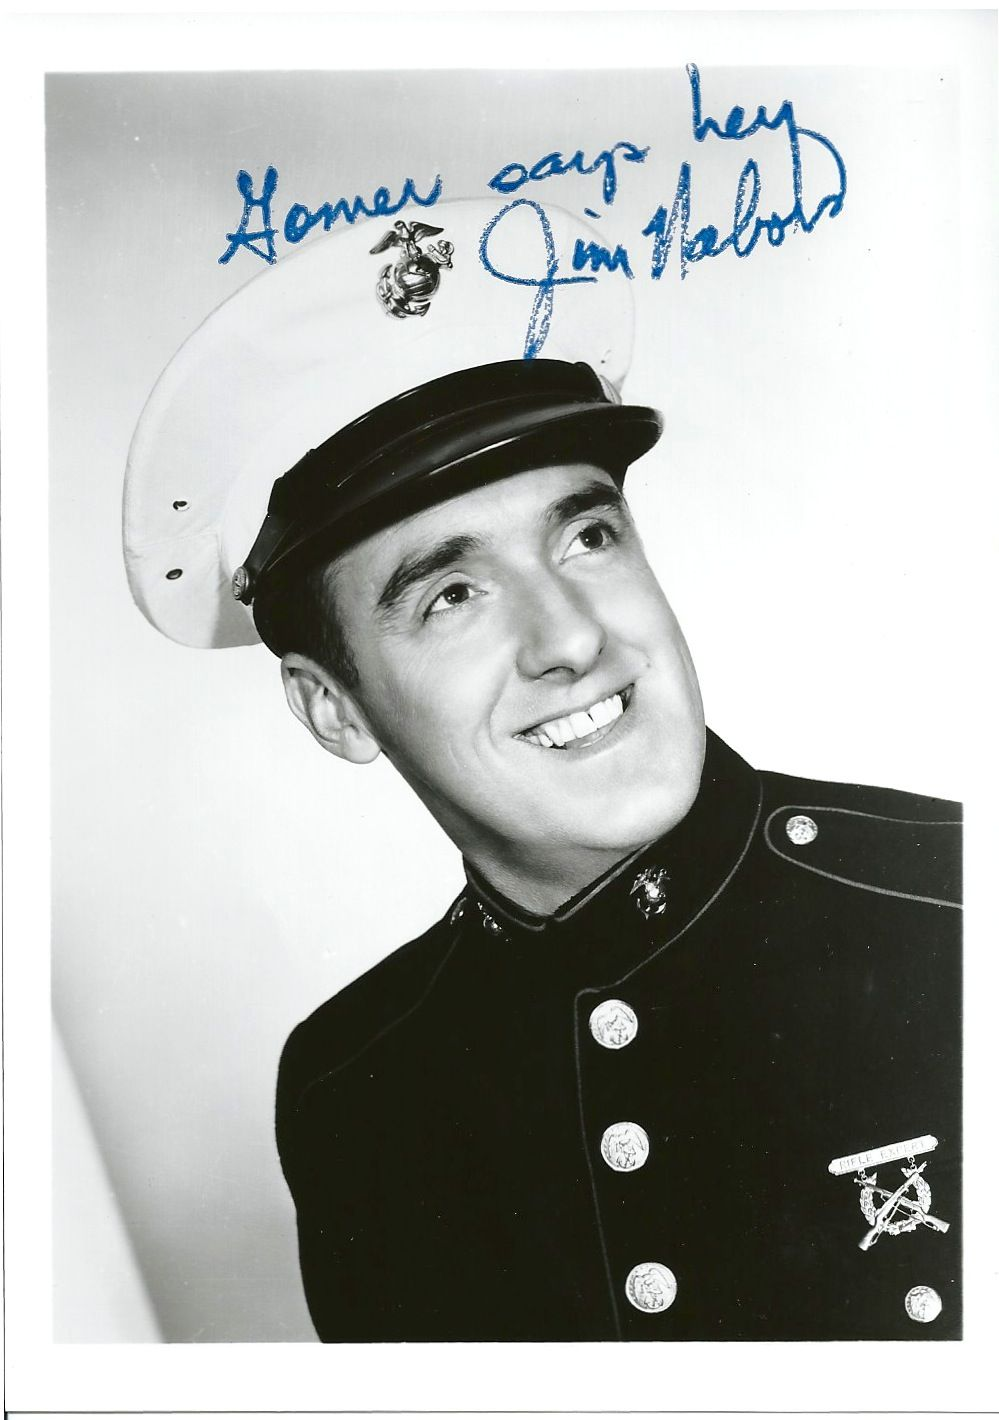 jim nabors stan cadwallader photo